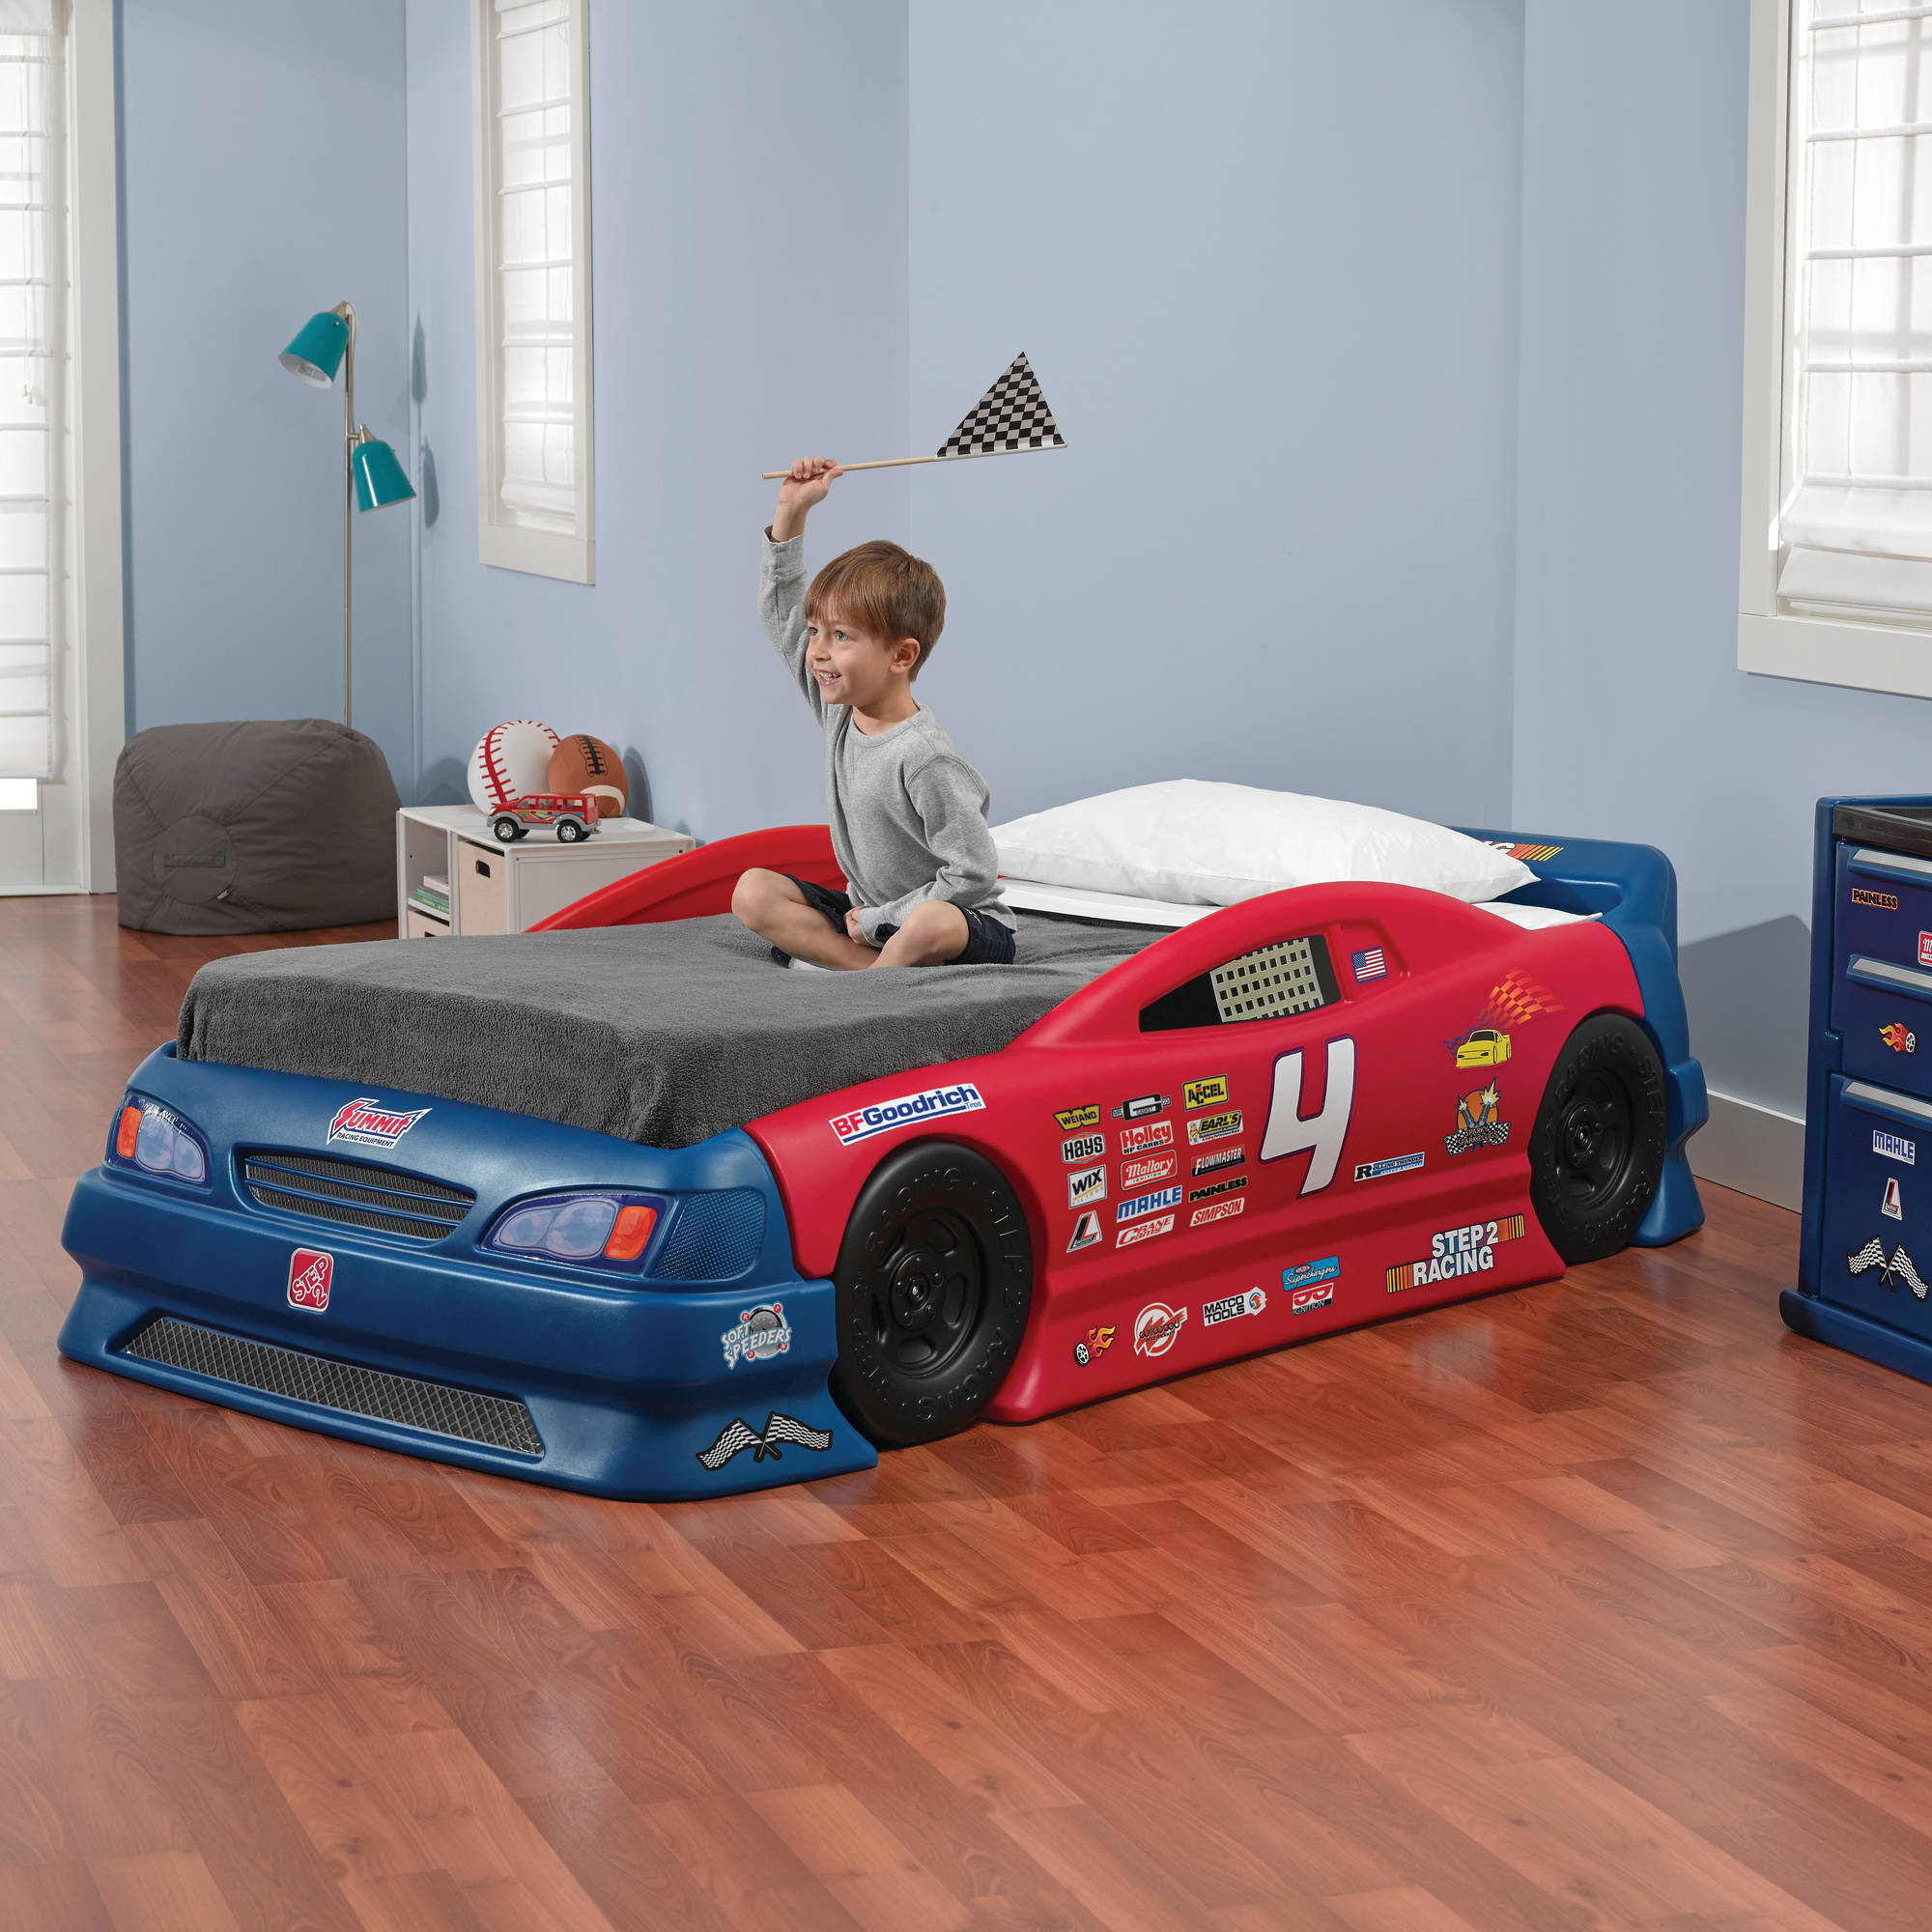 step 2 race car bed assembly instructions